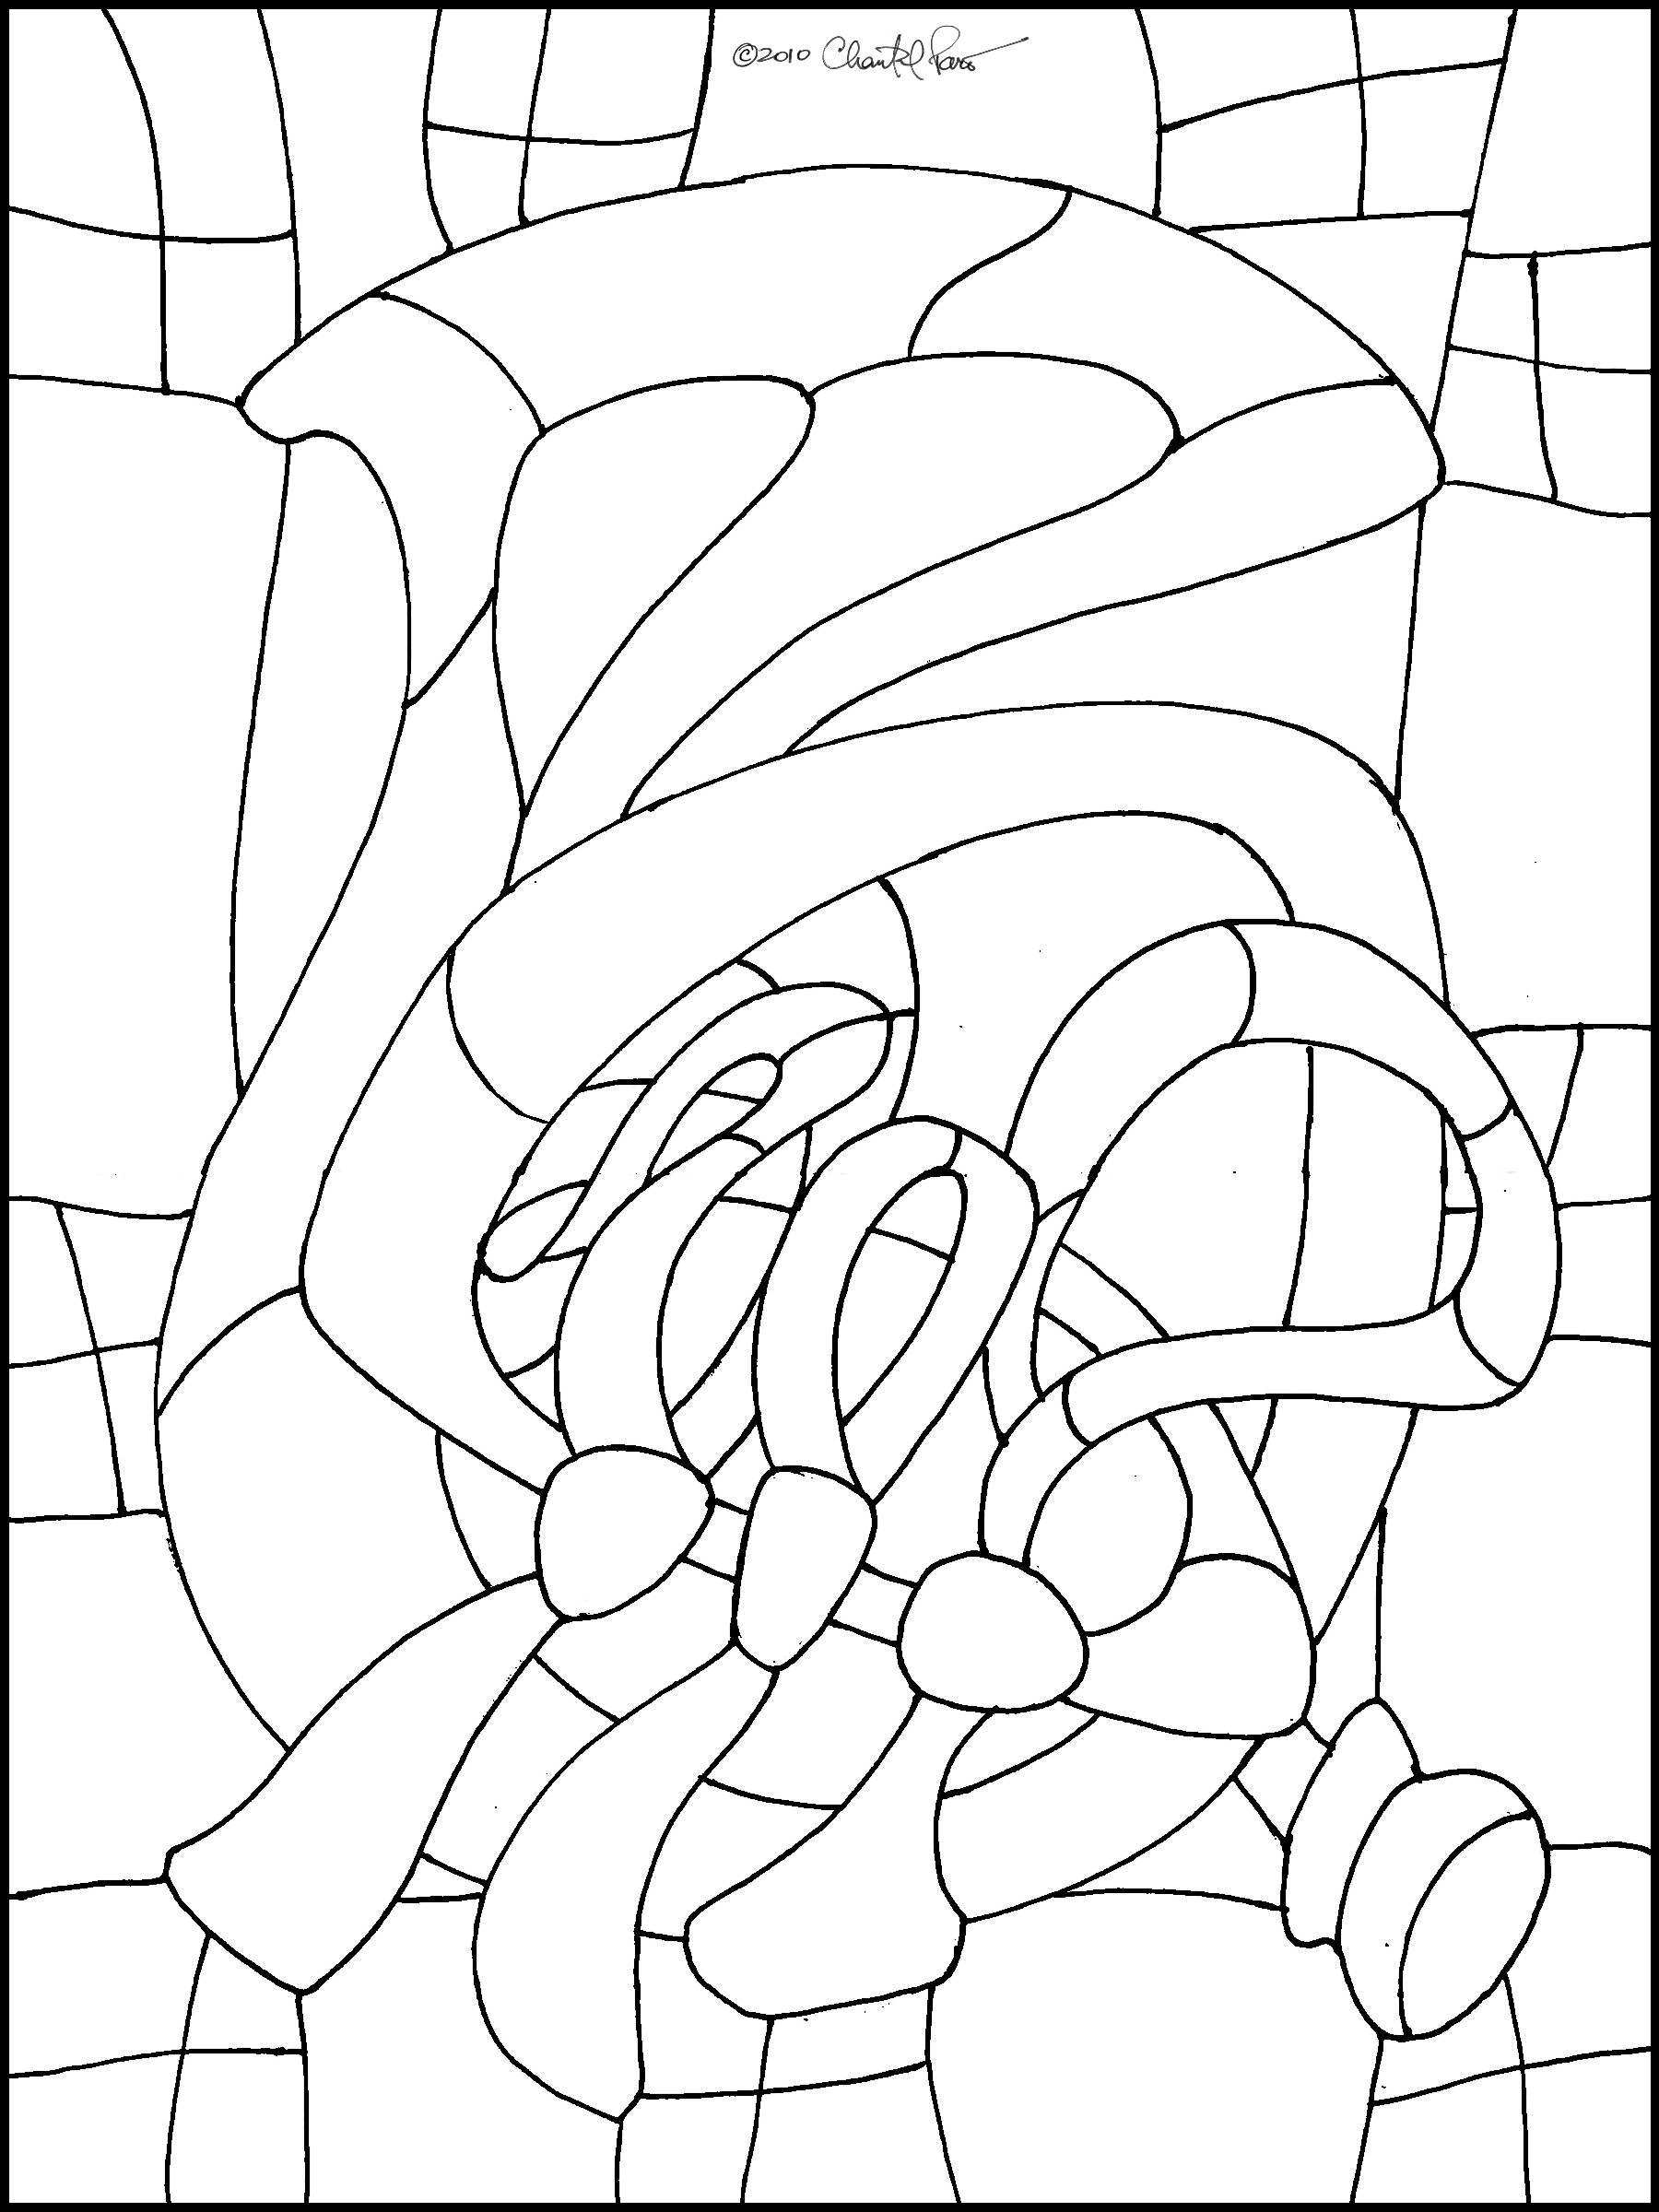 French Horn Stained Glass Pattern